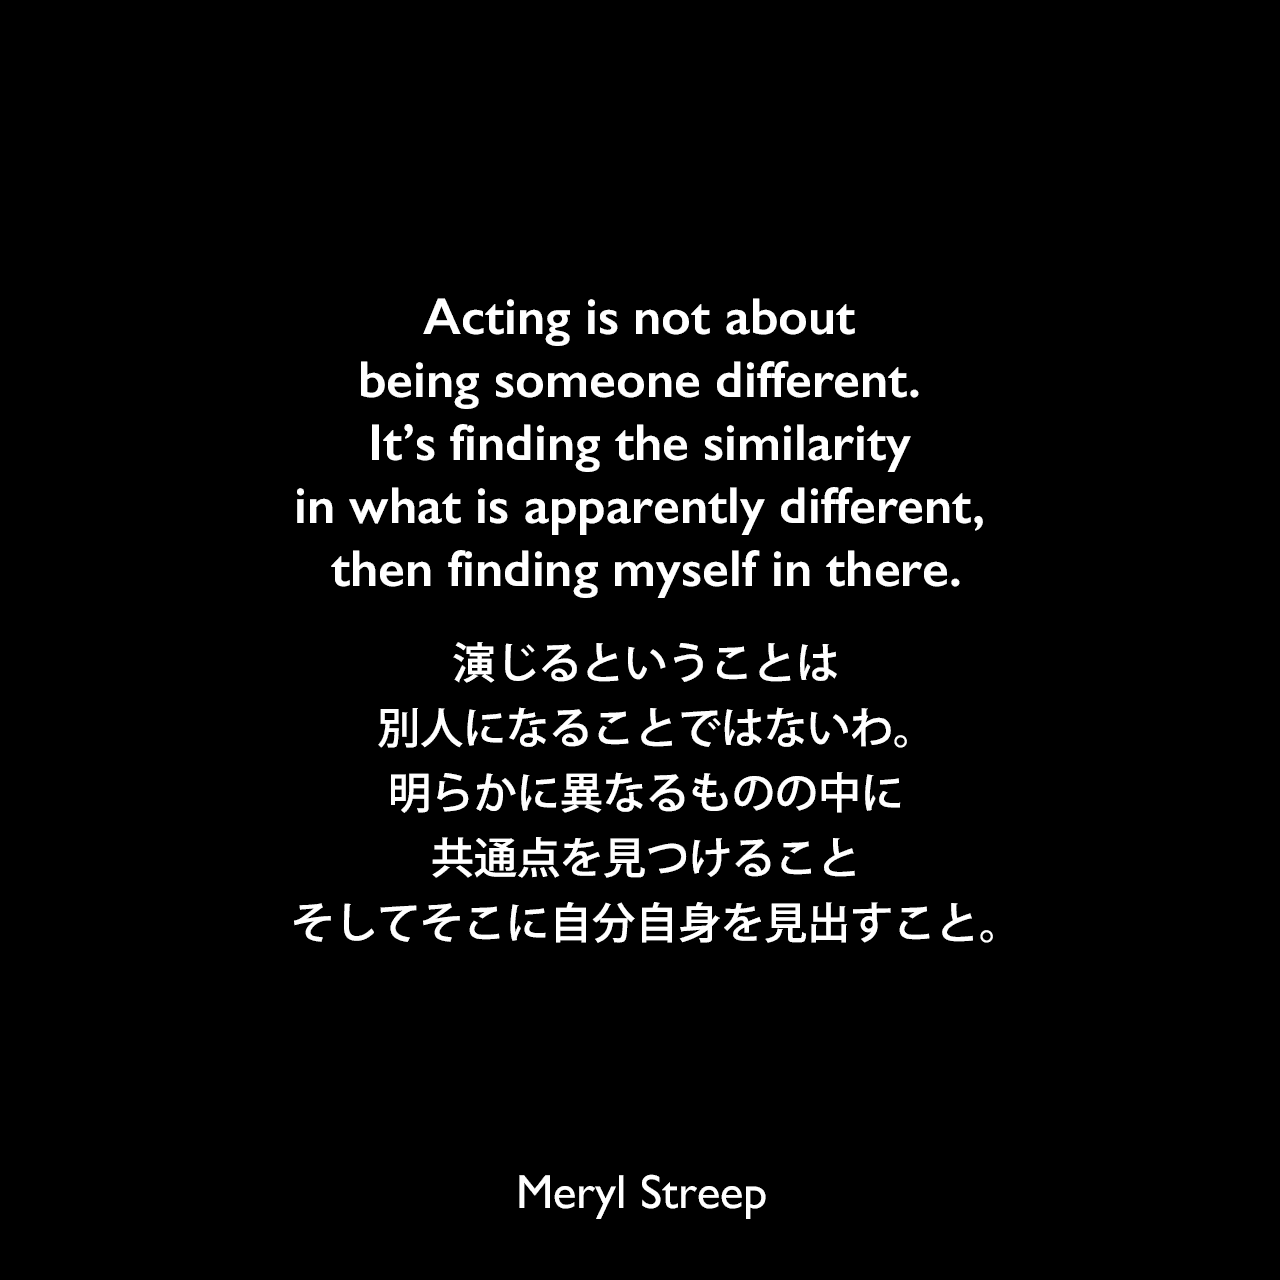 Acting is not about being someone different. It's finding the similarity in what is apparently different, then finding myself in there.演じるということは、別人になることではないわ。明らかに異なるものの中に共通点を見つけること、そしてそこに自分自身を見出すこと。Meryl Streep